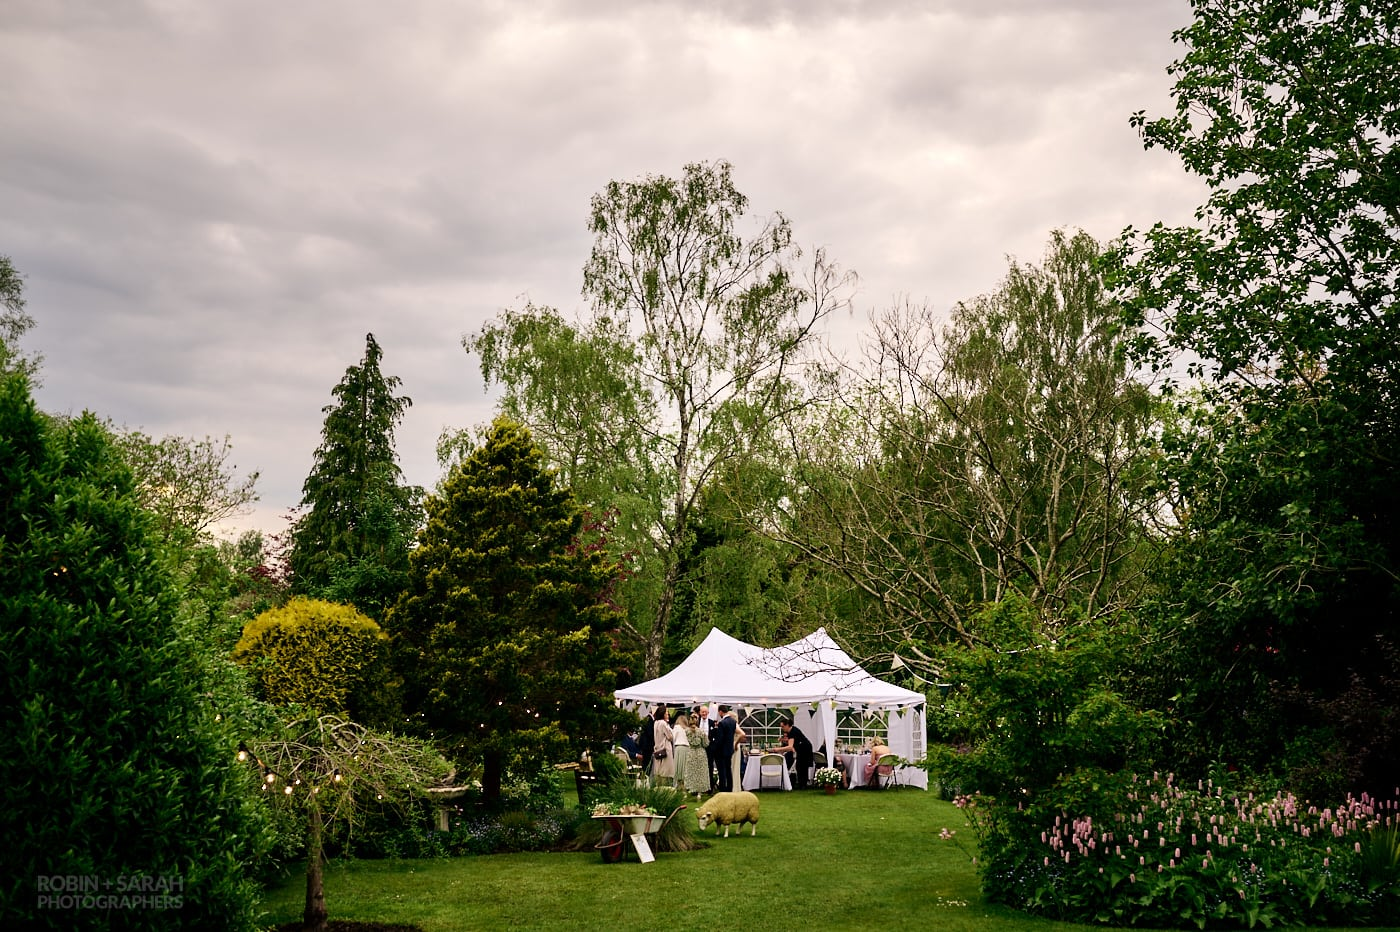 Marquee in garden with wedding guests enjoying the evening